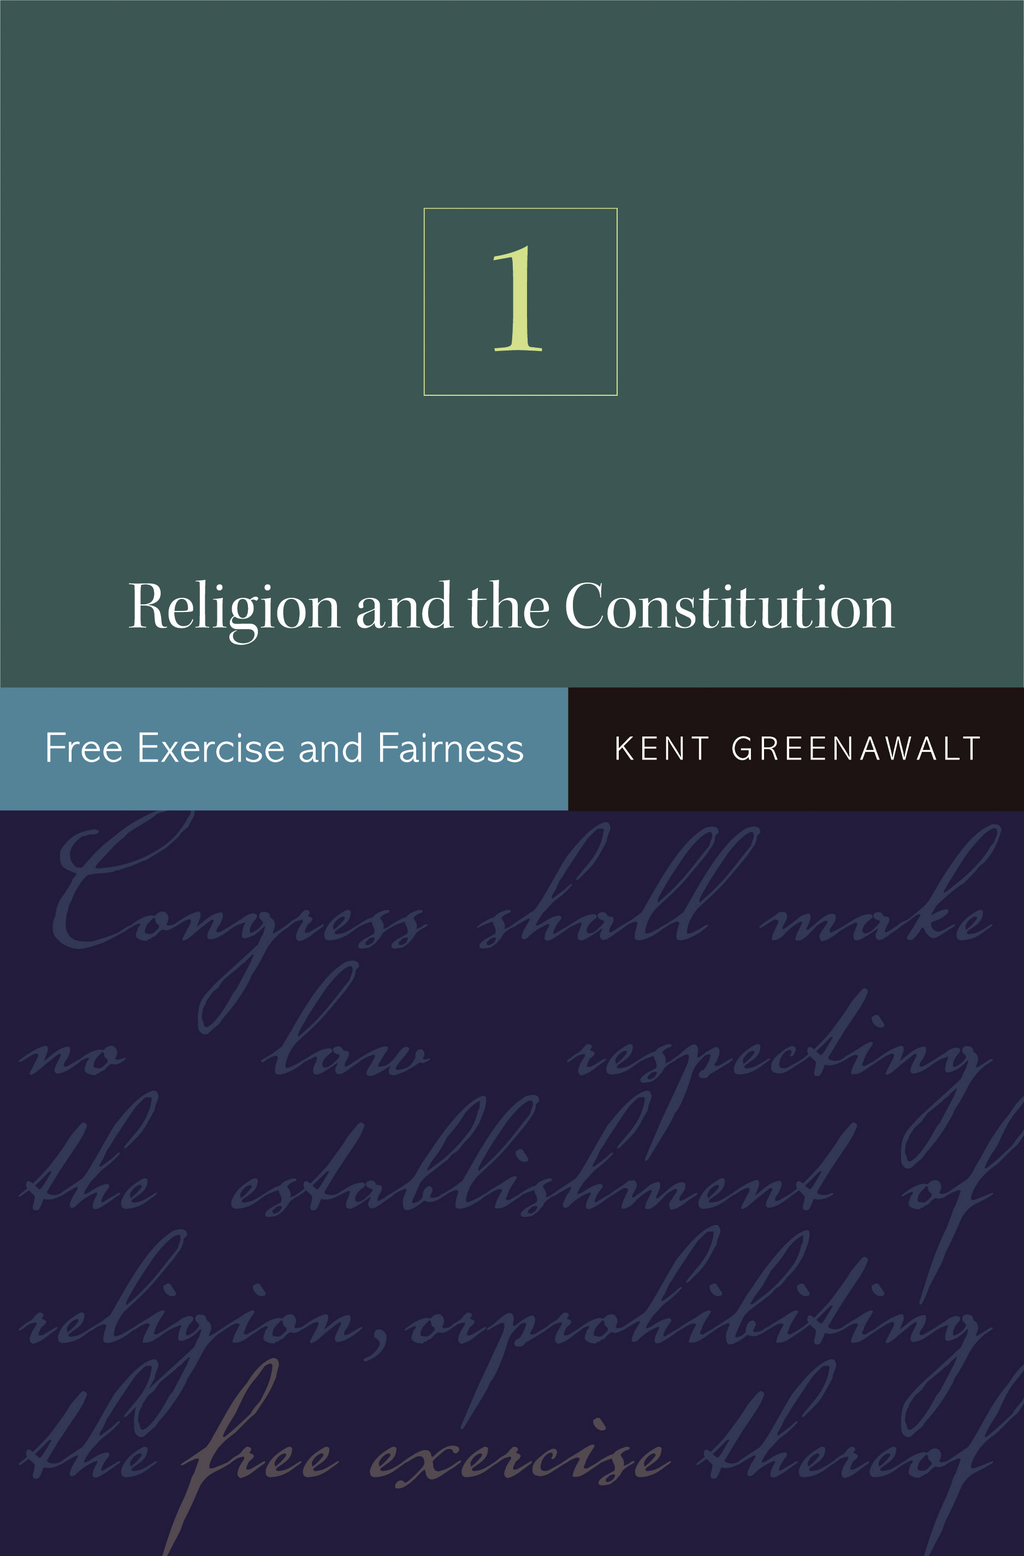 Religion and the Constitution Volume I: Free Exercise and Fairness